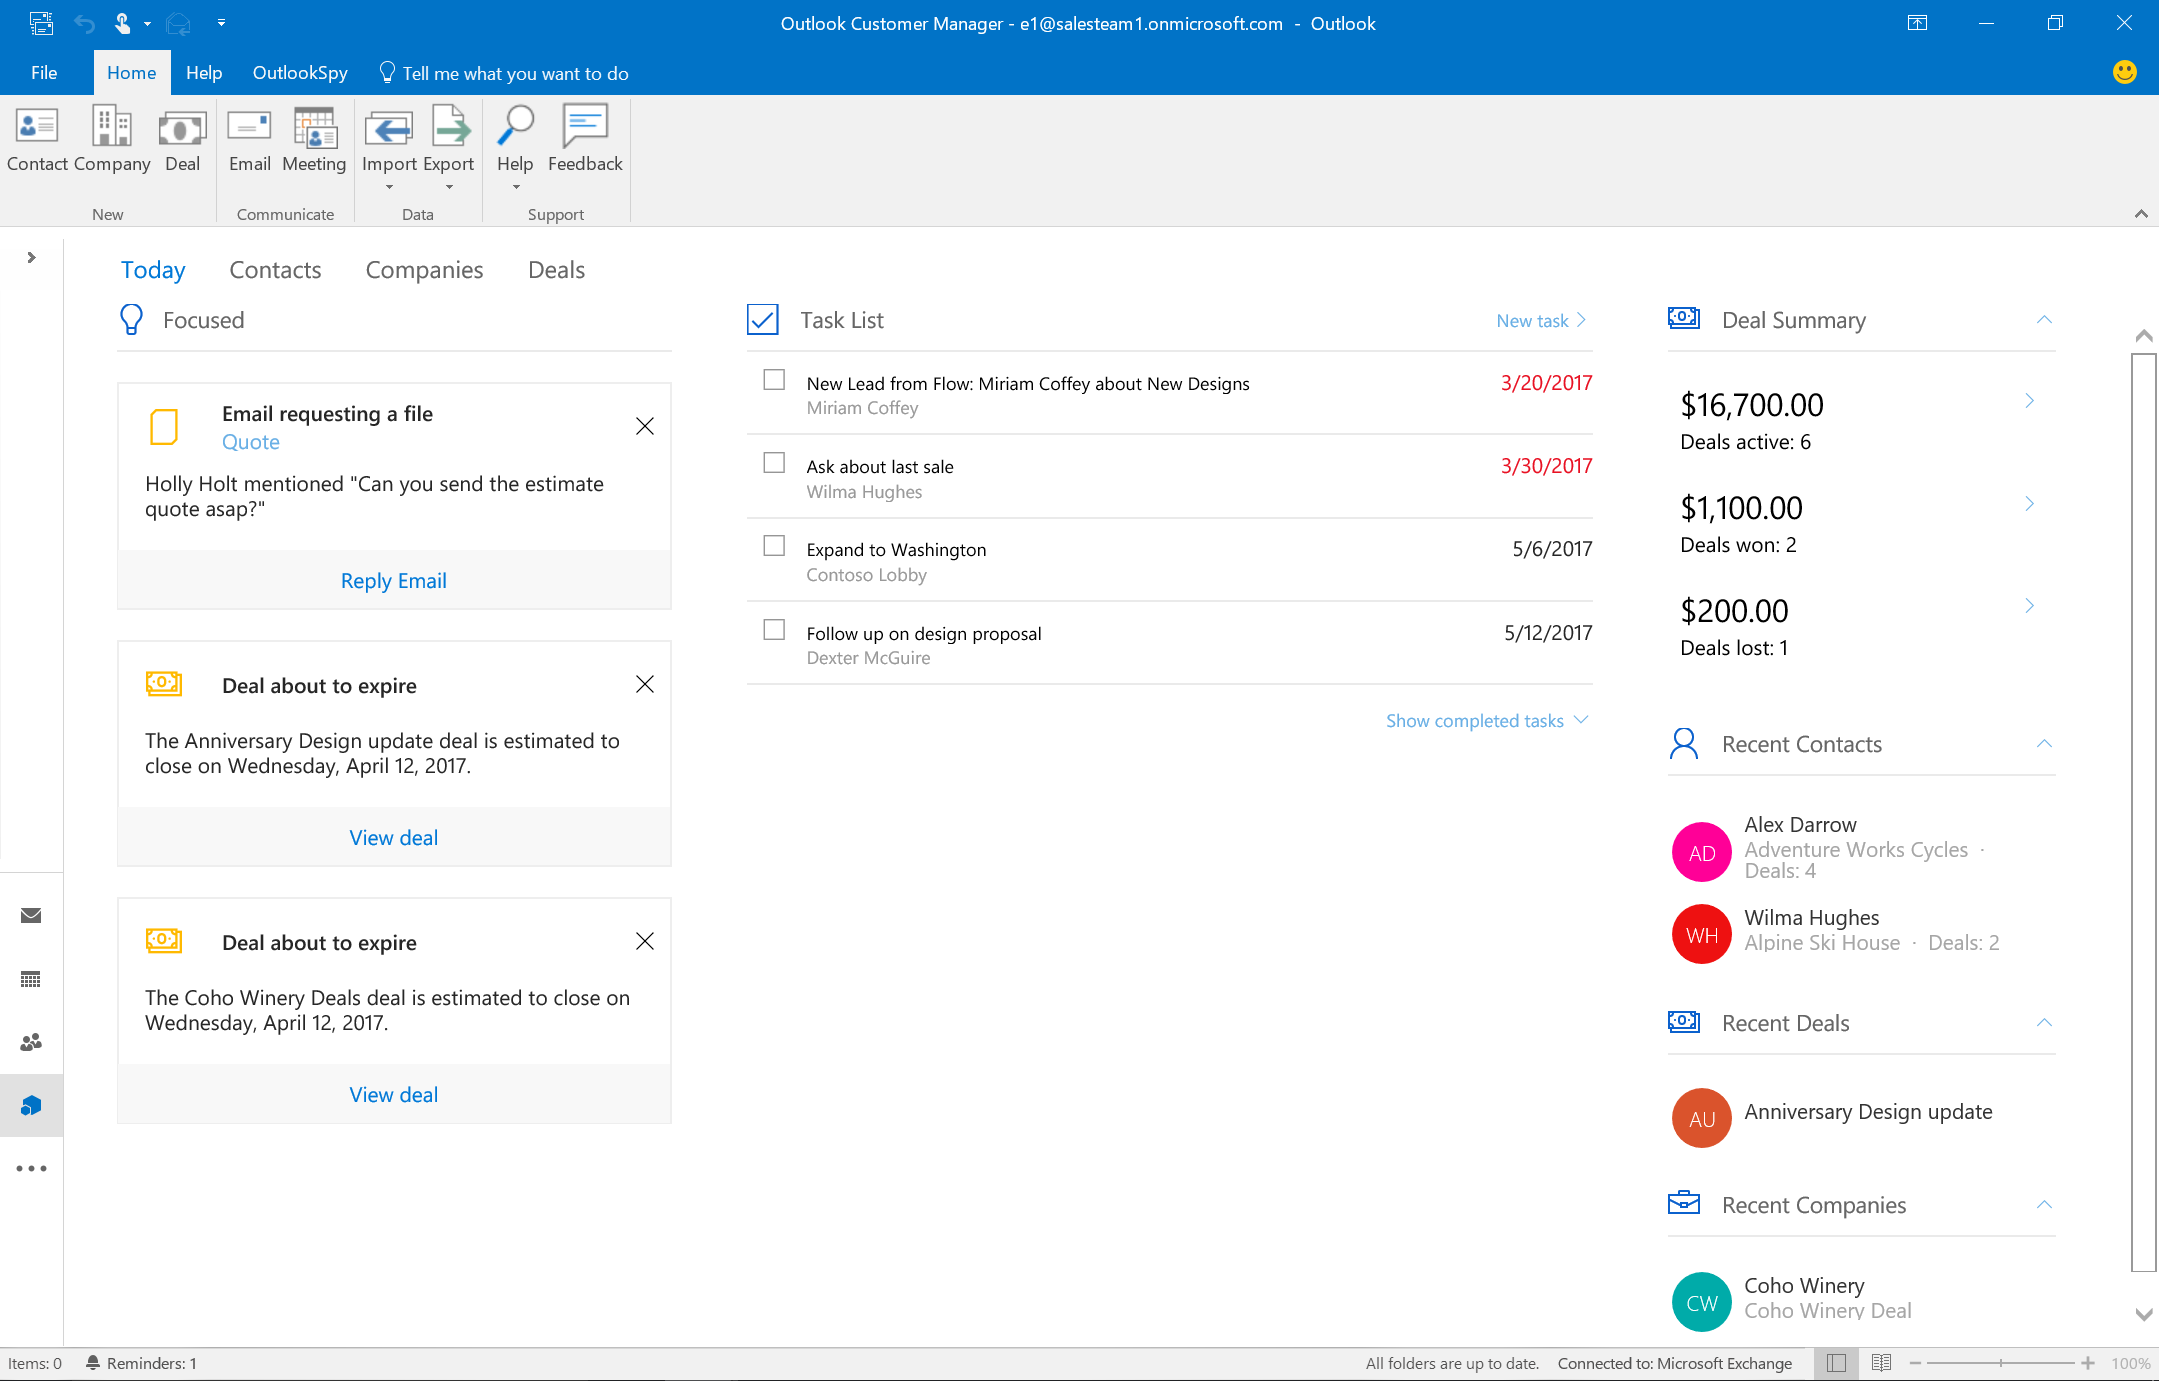 focused items in outlook customer manager